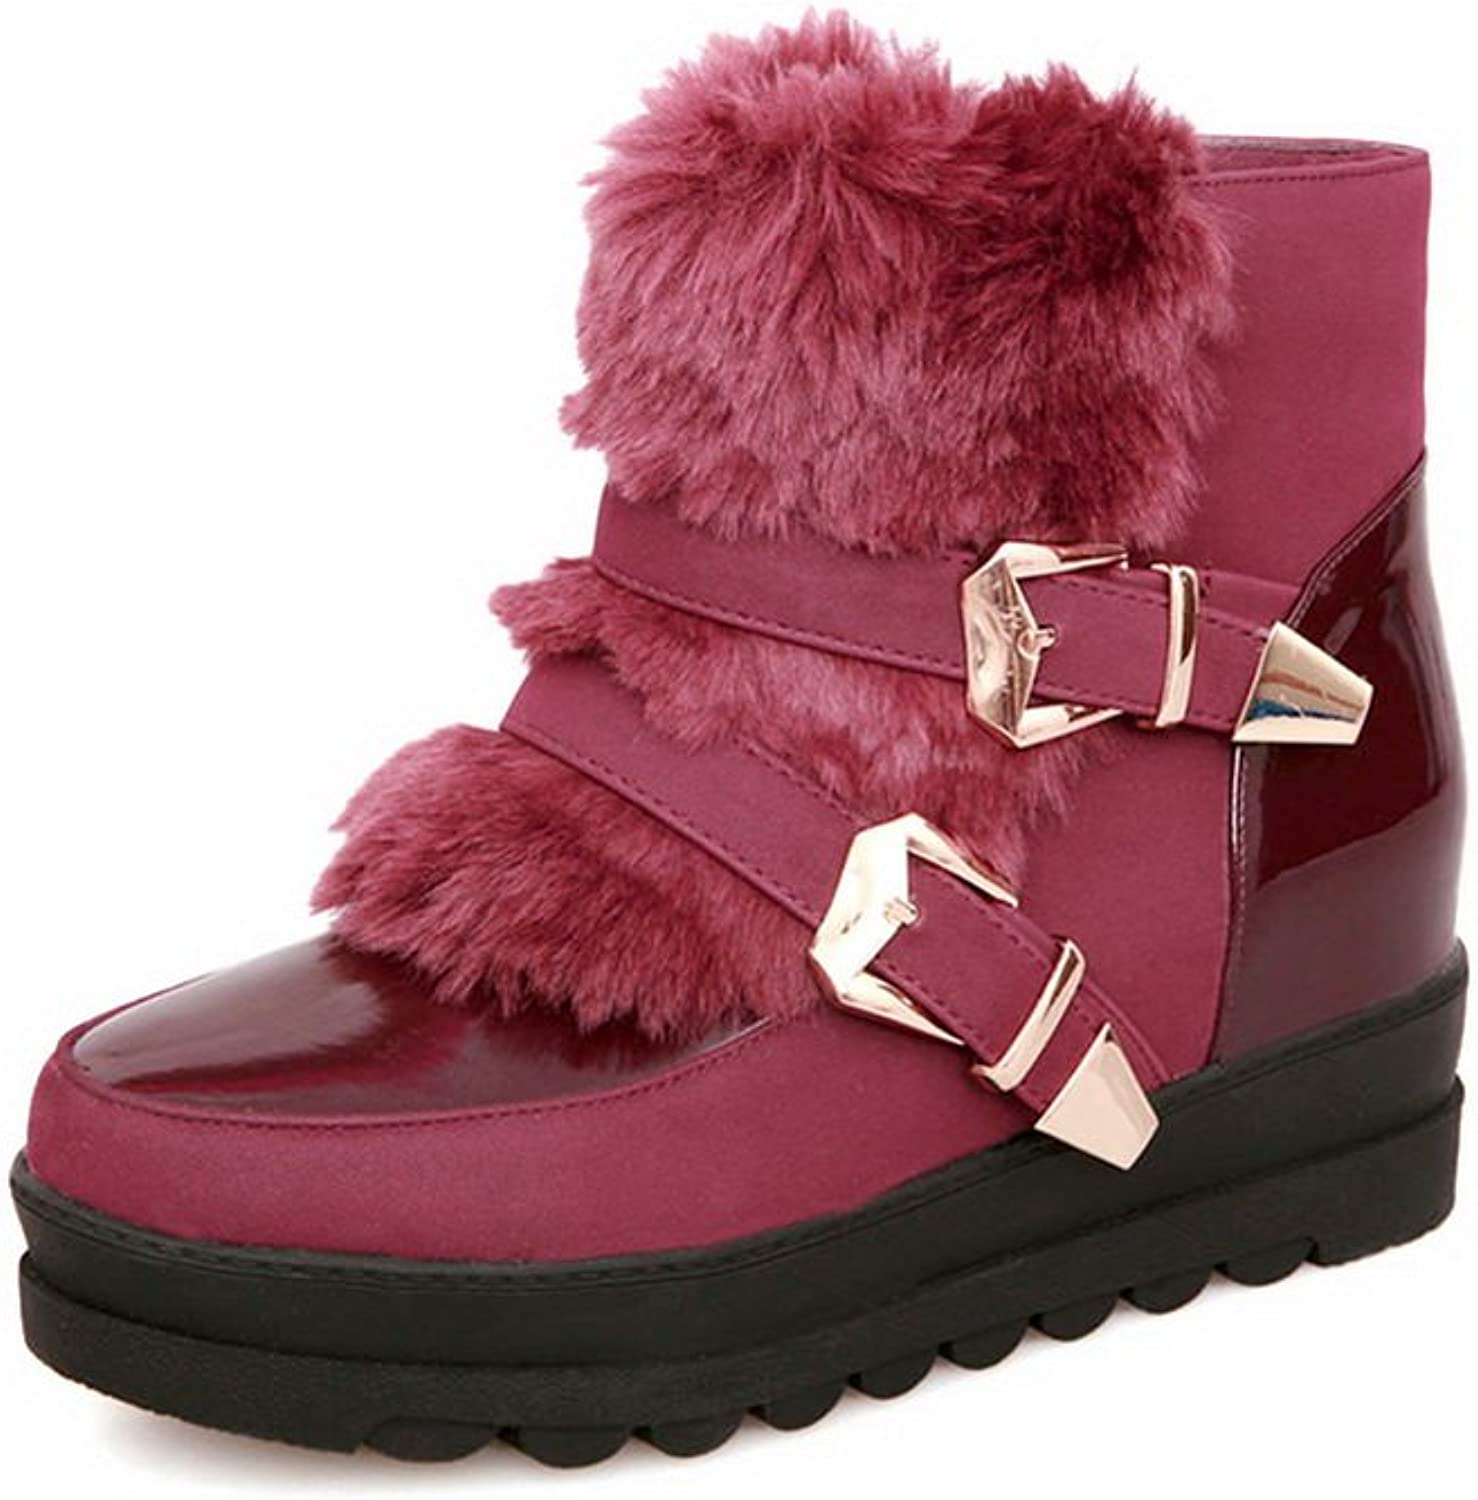 QueenFashion Women's Glitter Ankle Snow Boots with Zipper and Metal Buckles